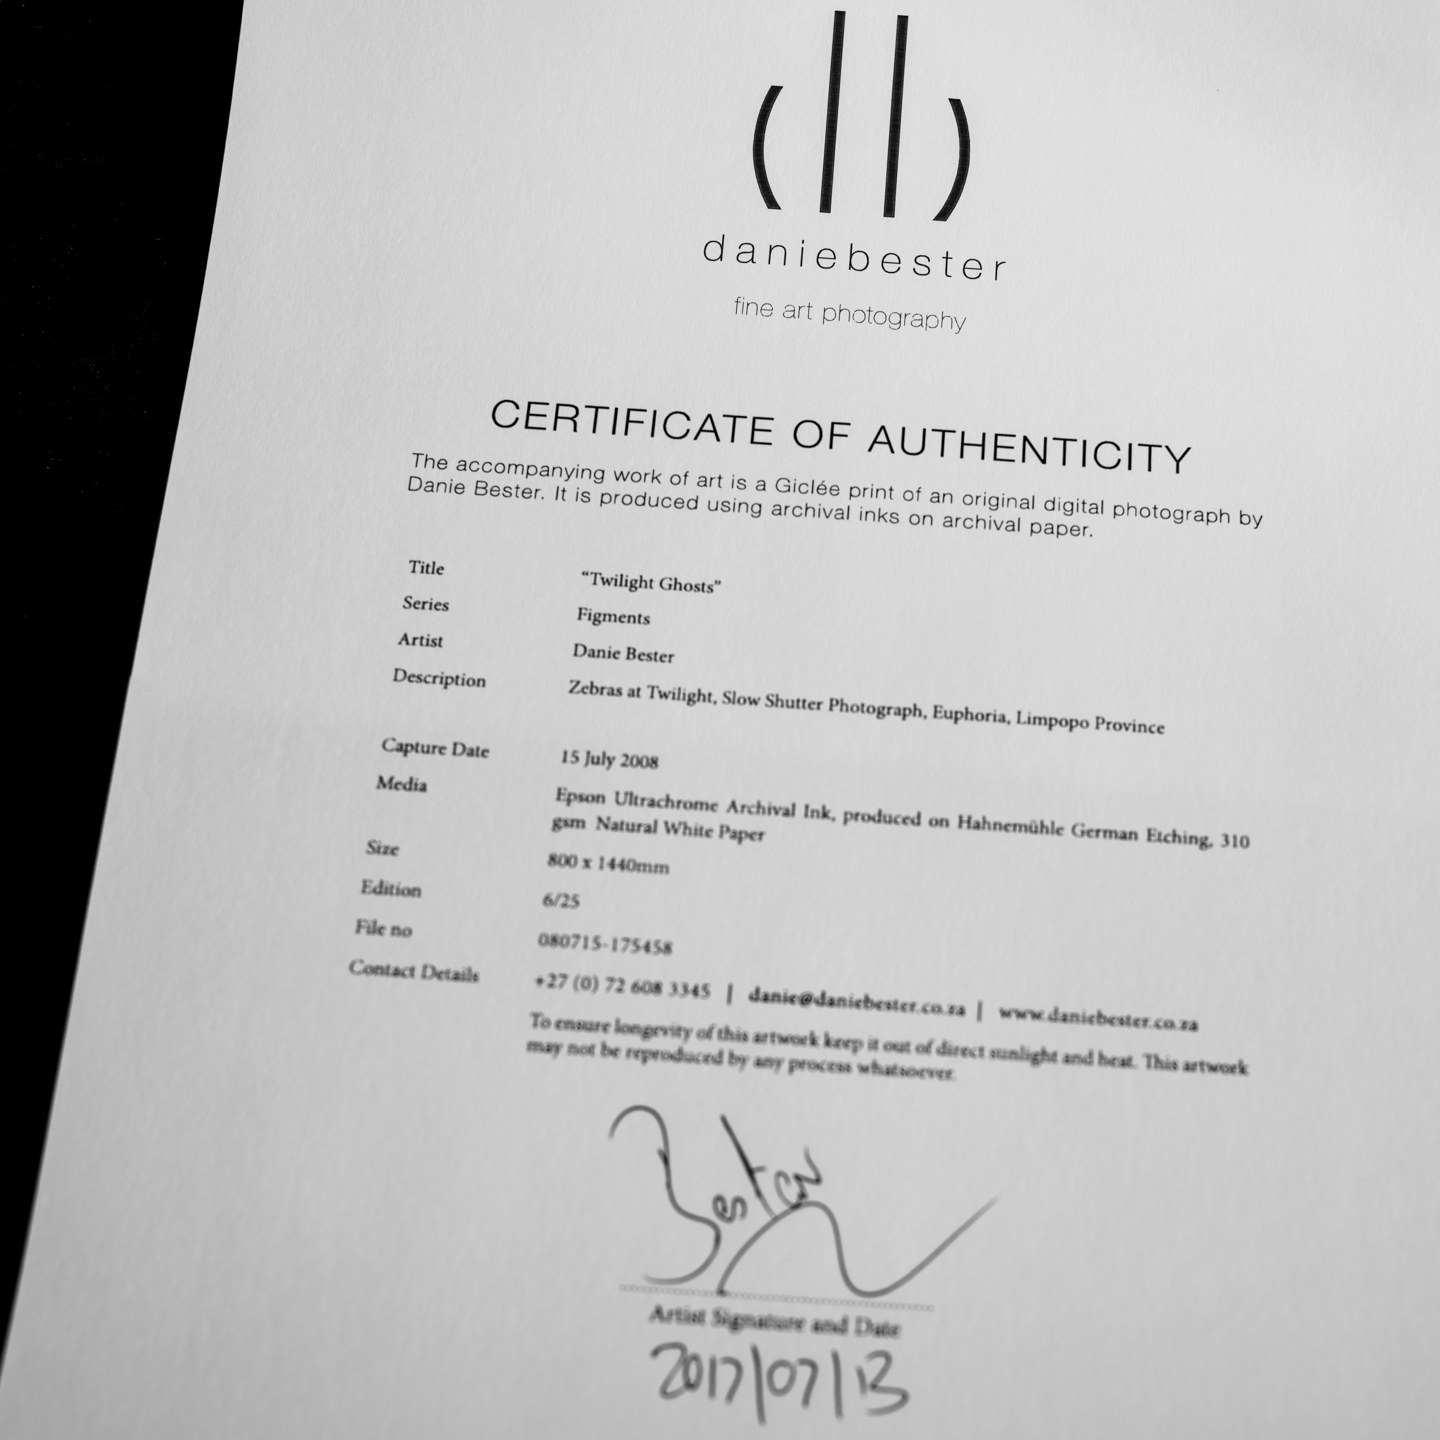 All prints are accompanied by a unique certificate of authenticity